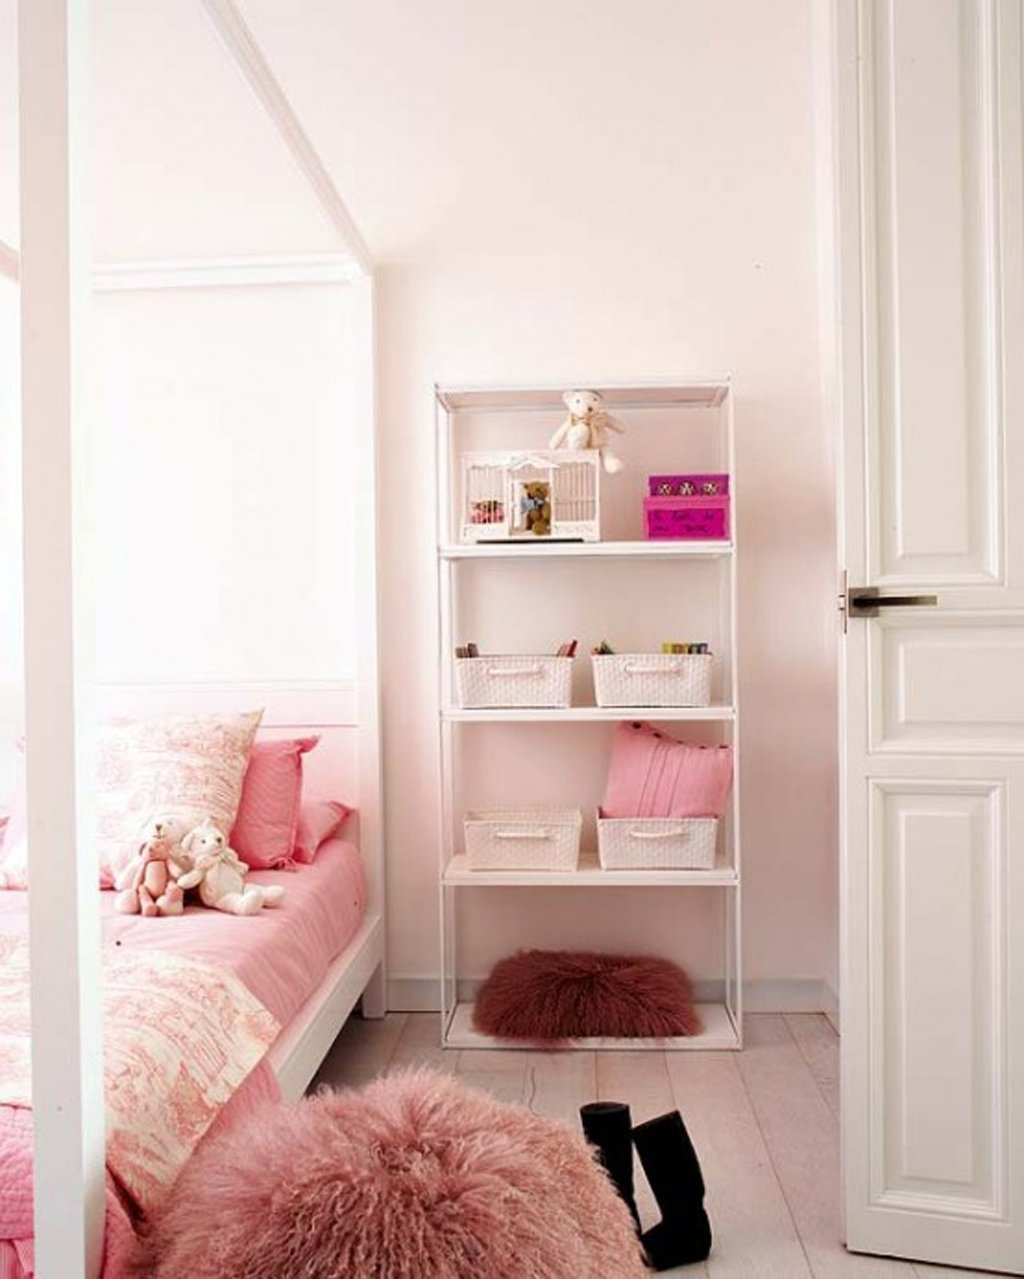 10 Elegant Cute Bedroom Ideas For Small Rooms cute bedroom designs for small rooms nurani